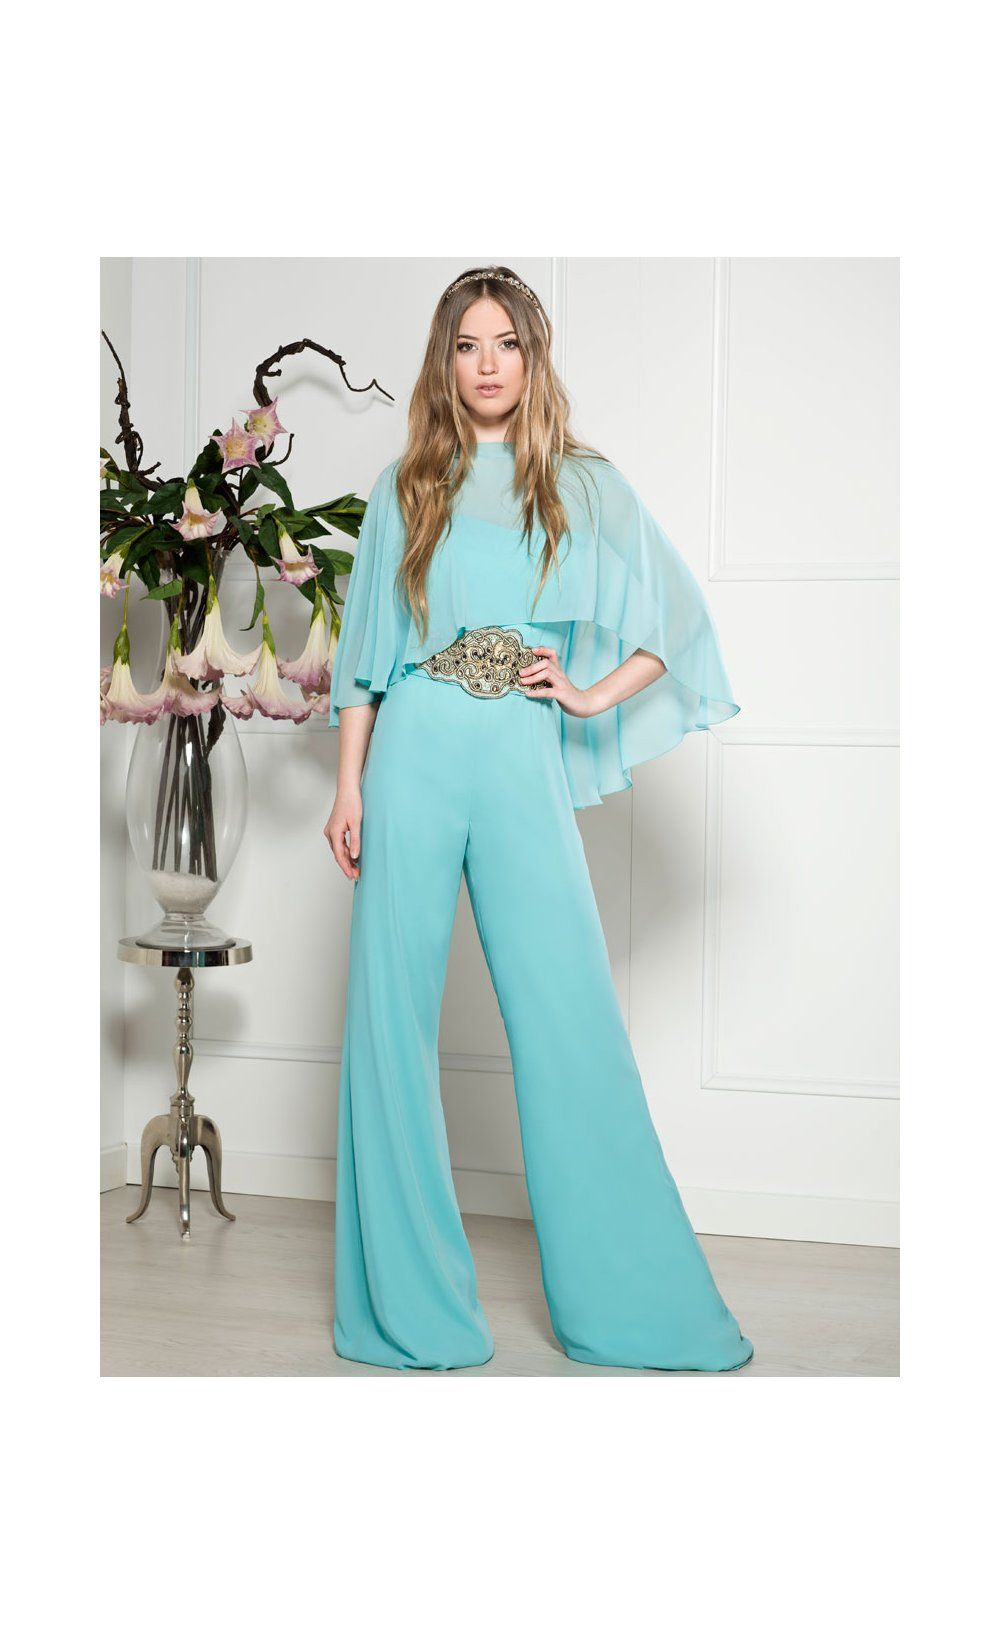 Mono ANA TORRES Capelina | jumpsuit | Pinterest | Complete outfits ...